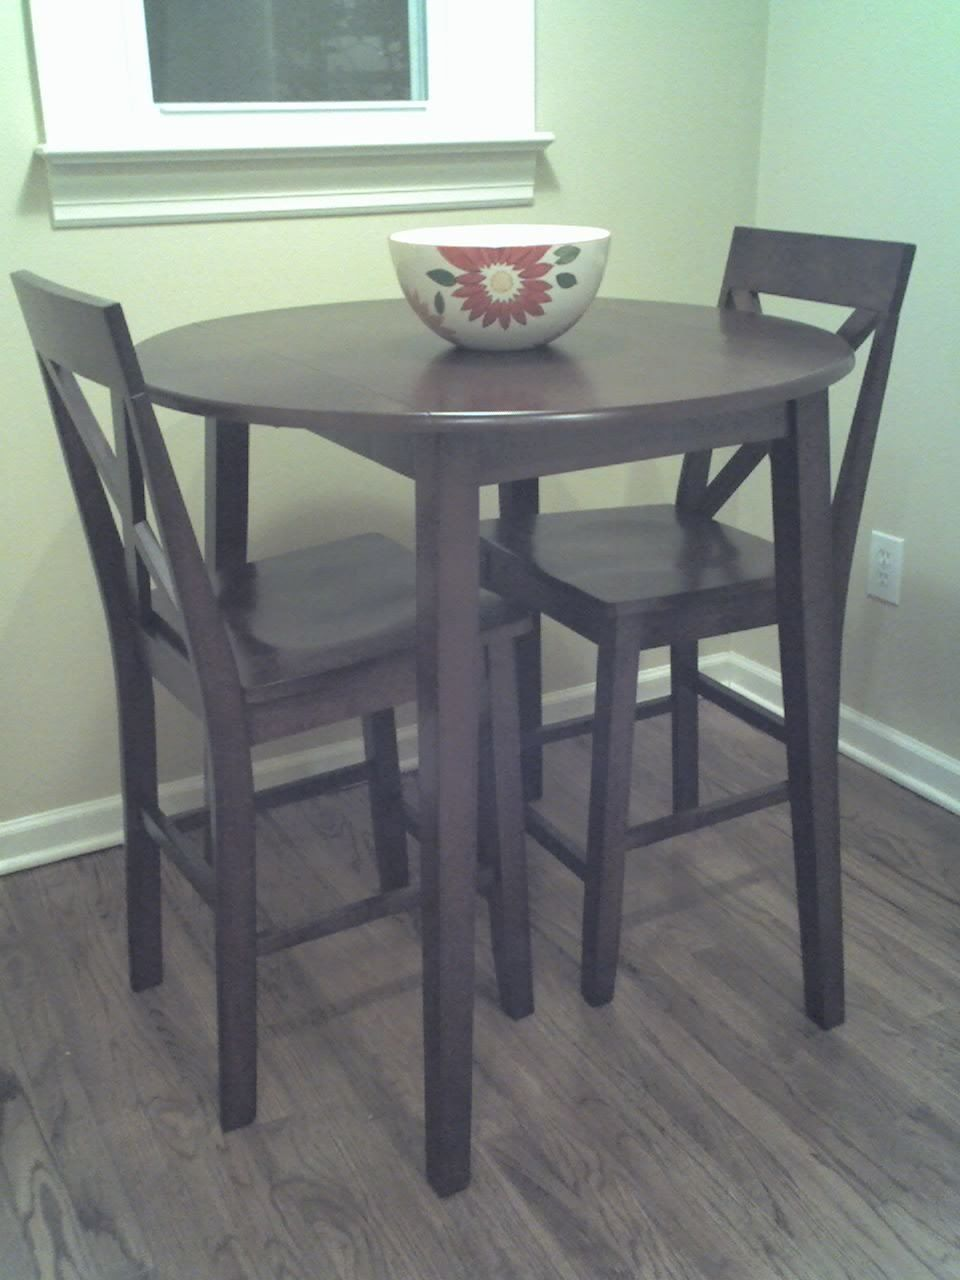 Tall Table And Chair For Kitchen Awesome Tall Kitchen Table With Stools Mahogany In Keepitmo Tall Kitchen Table Small Kitchen Table Sets Kitchen Table Settings